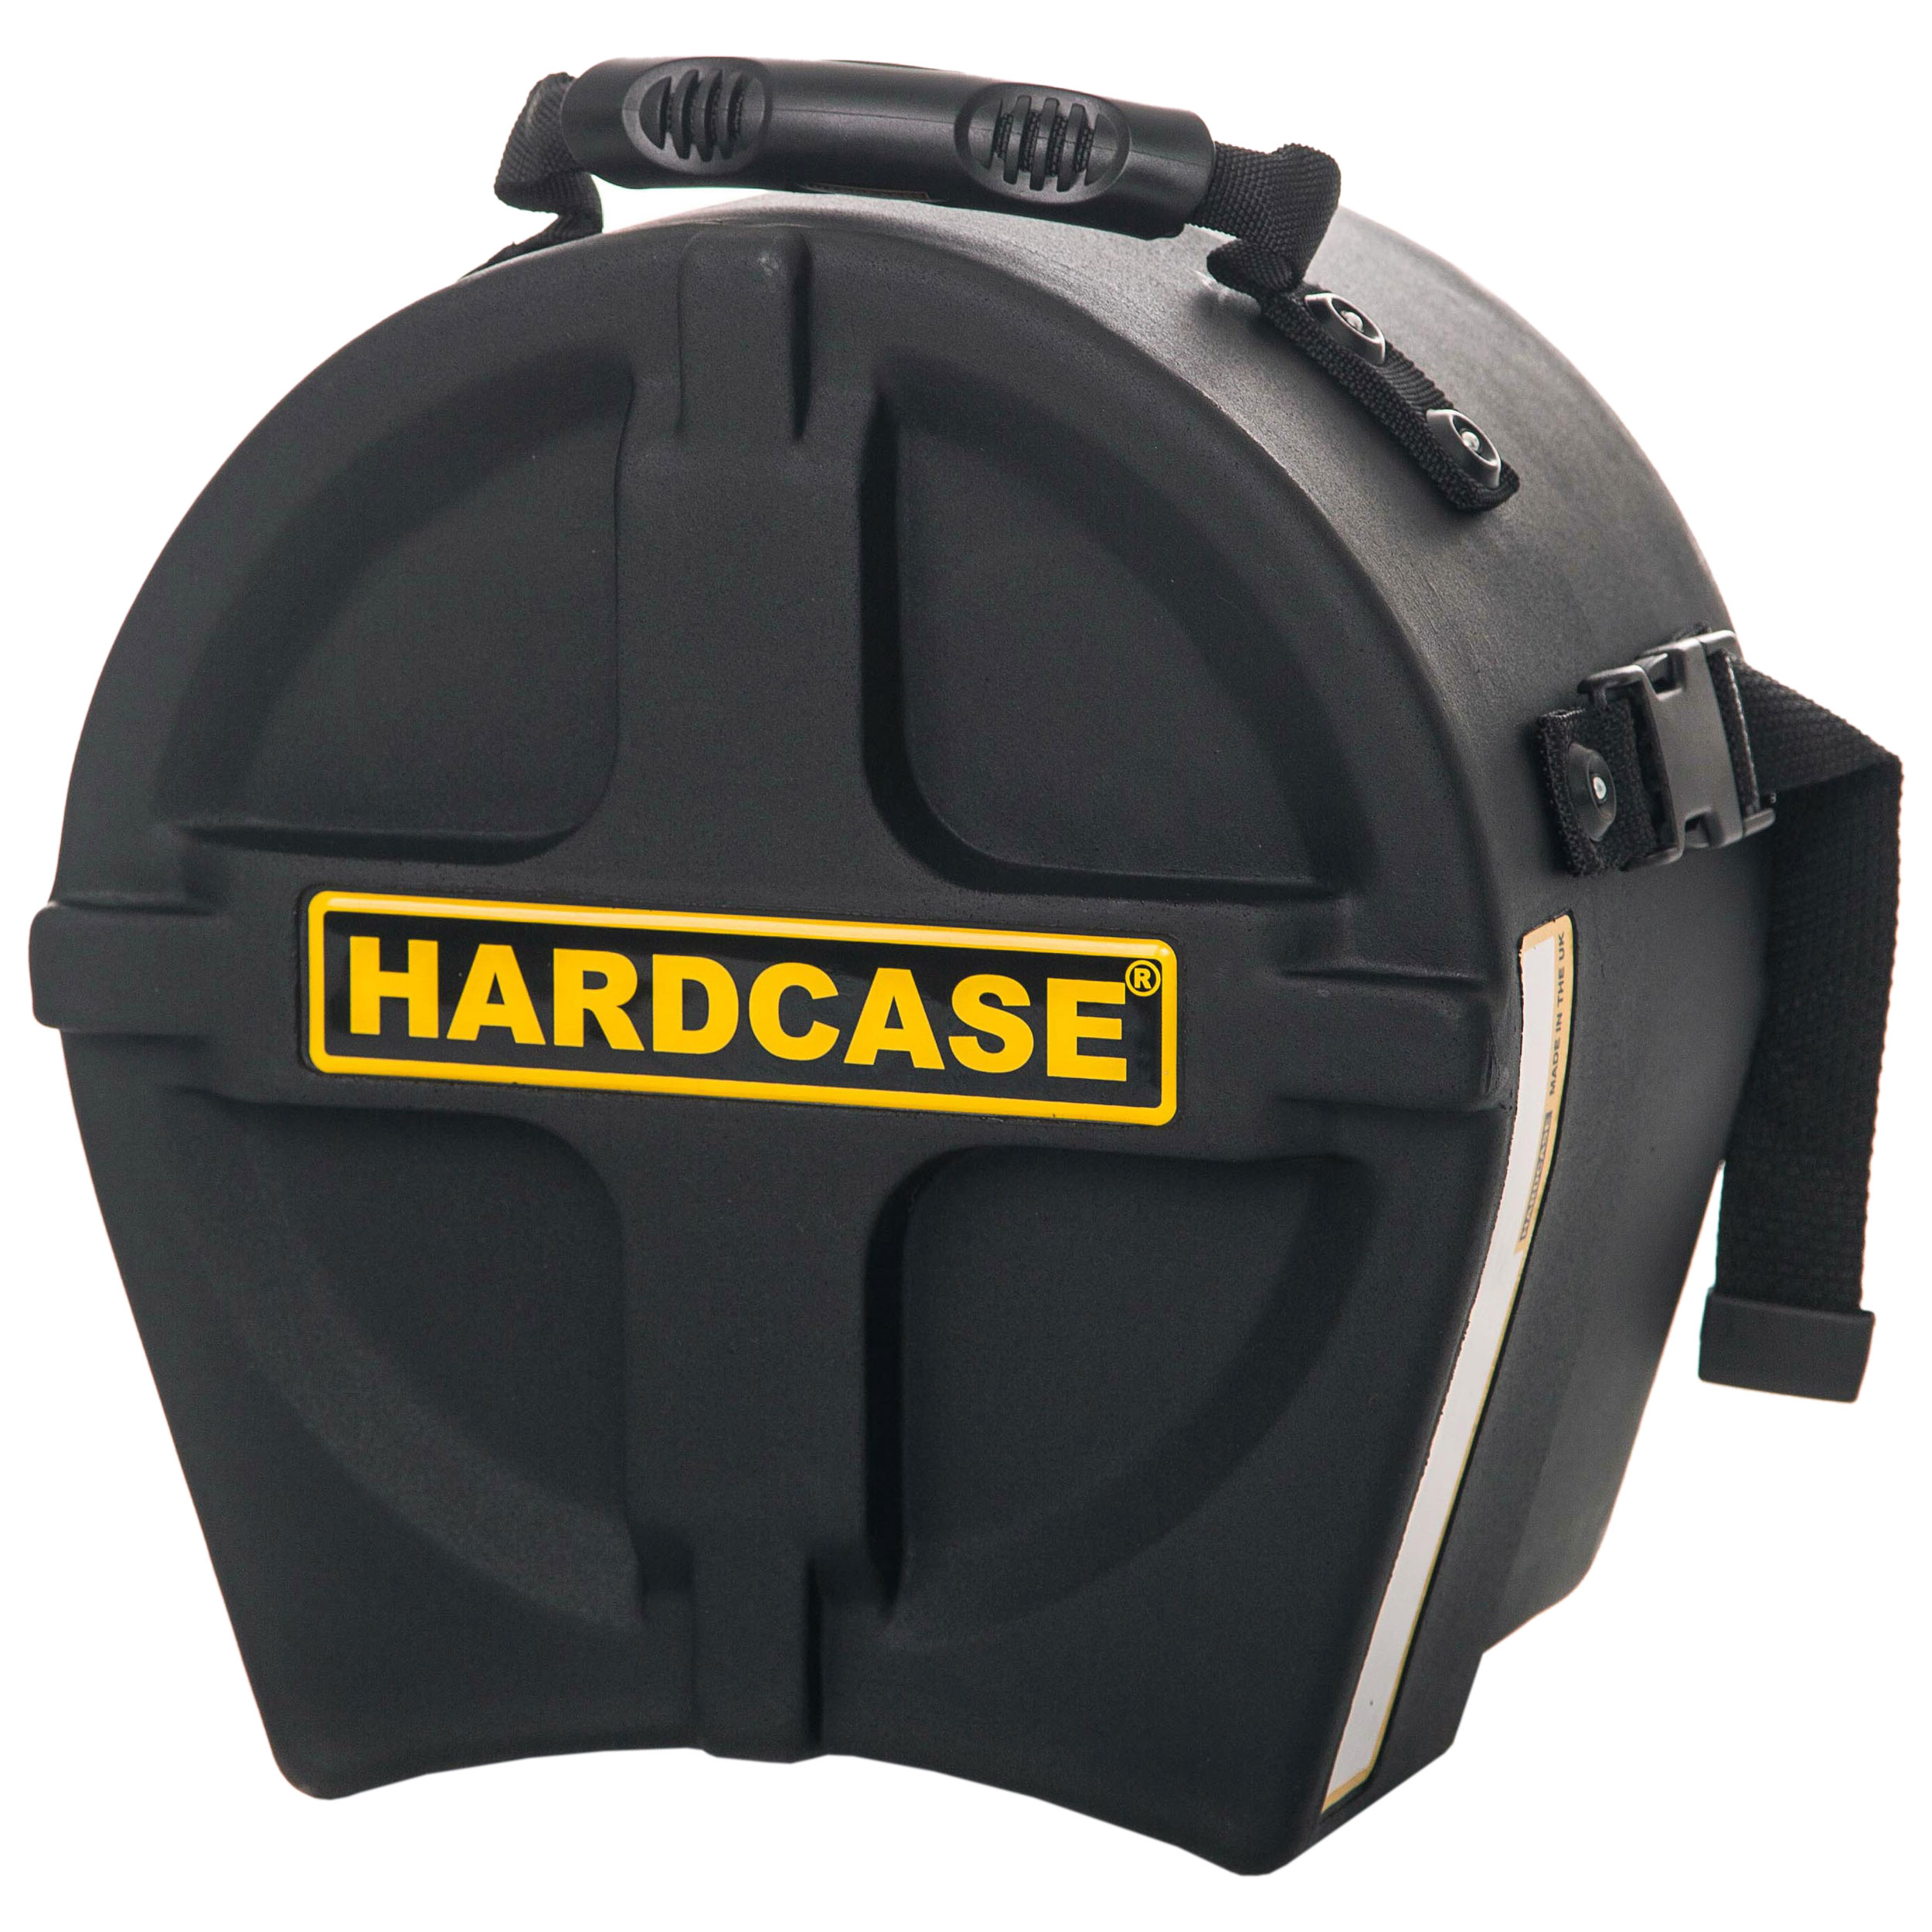 "Hardcase 8"" (Diameter) x 7-to-8"" (Deep) Tom Case"